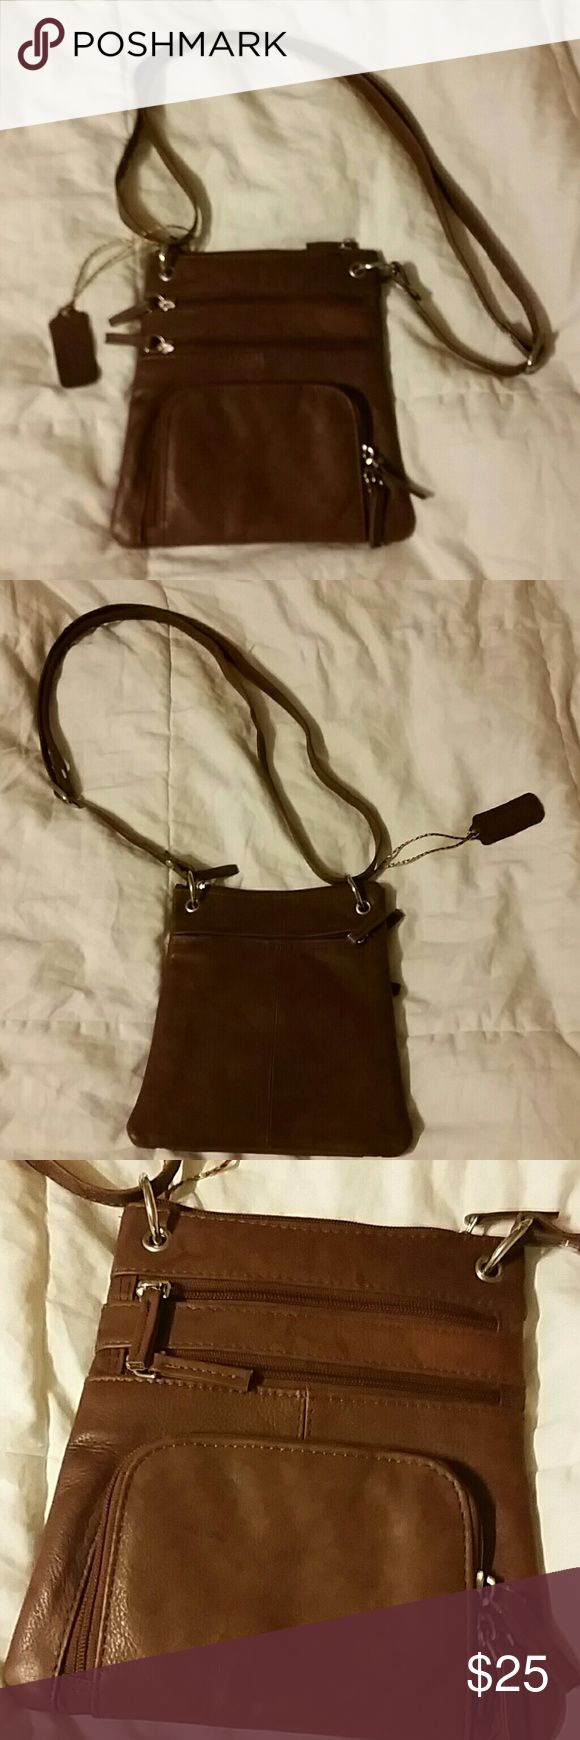 """Bacci brown leather festival bag Small leather purse with an adjustable strap.  8"""" long x 7"""" wide.  Front and back zip pockets.  NWOT. Bacci Bags Crossbody Bags"""